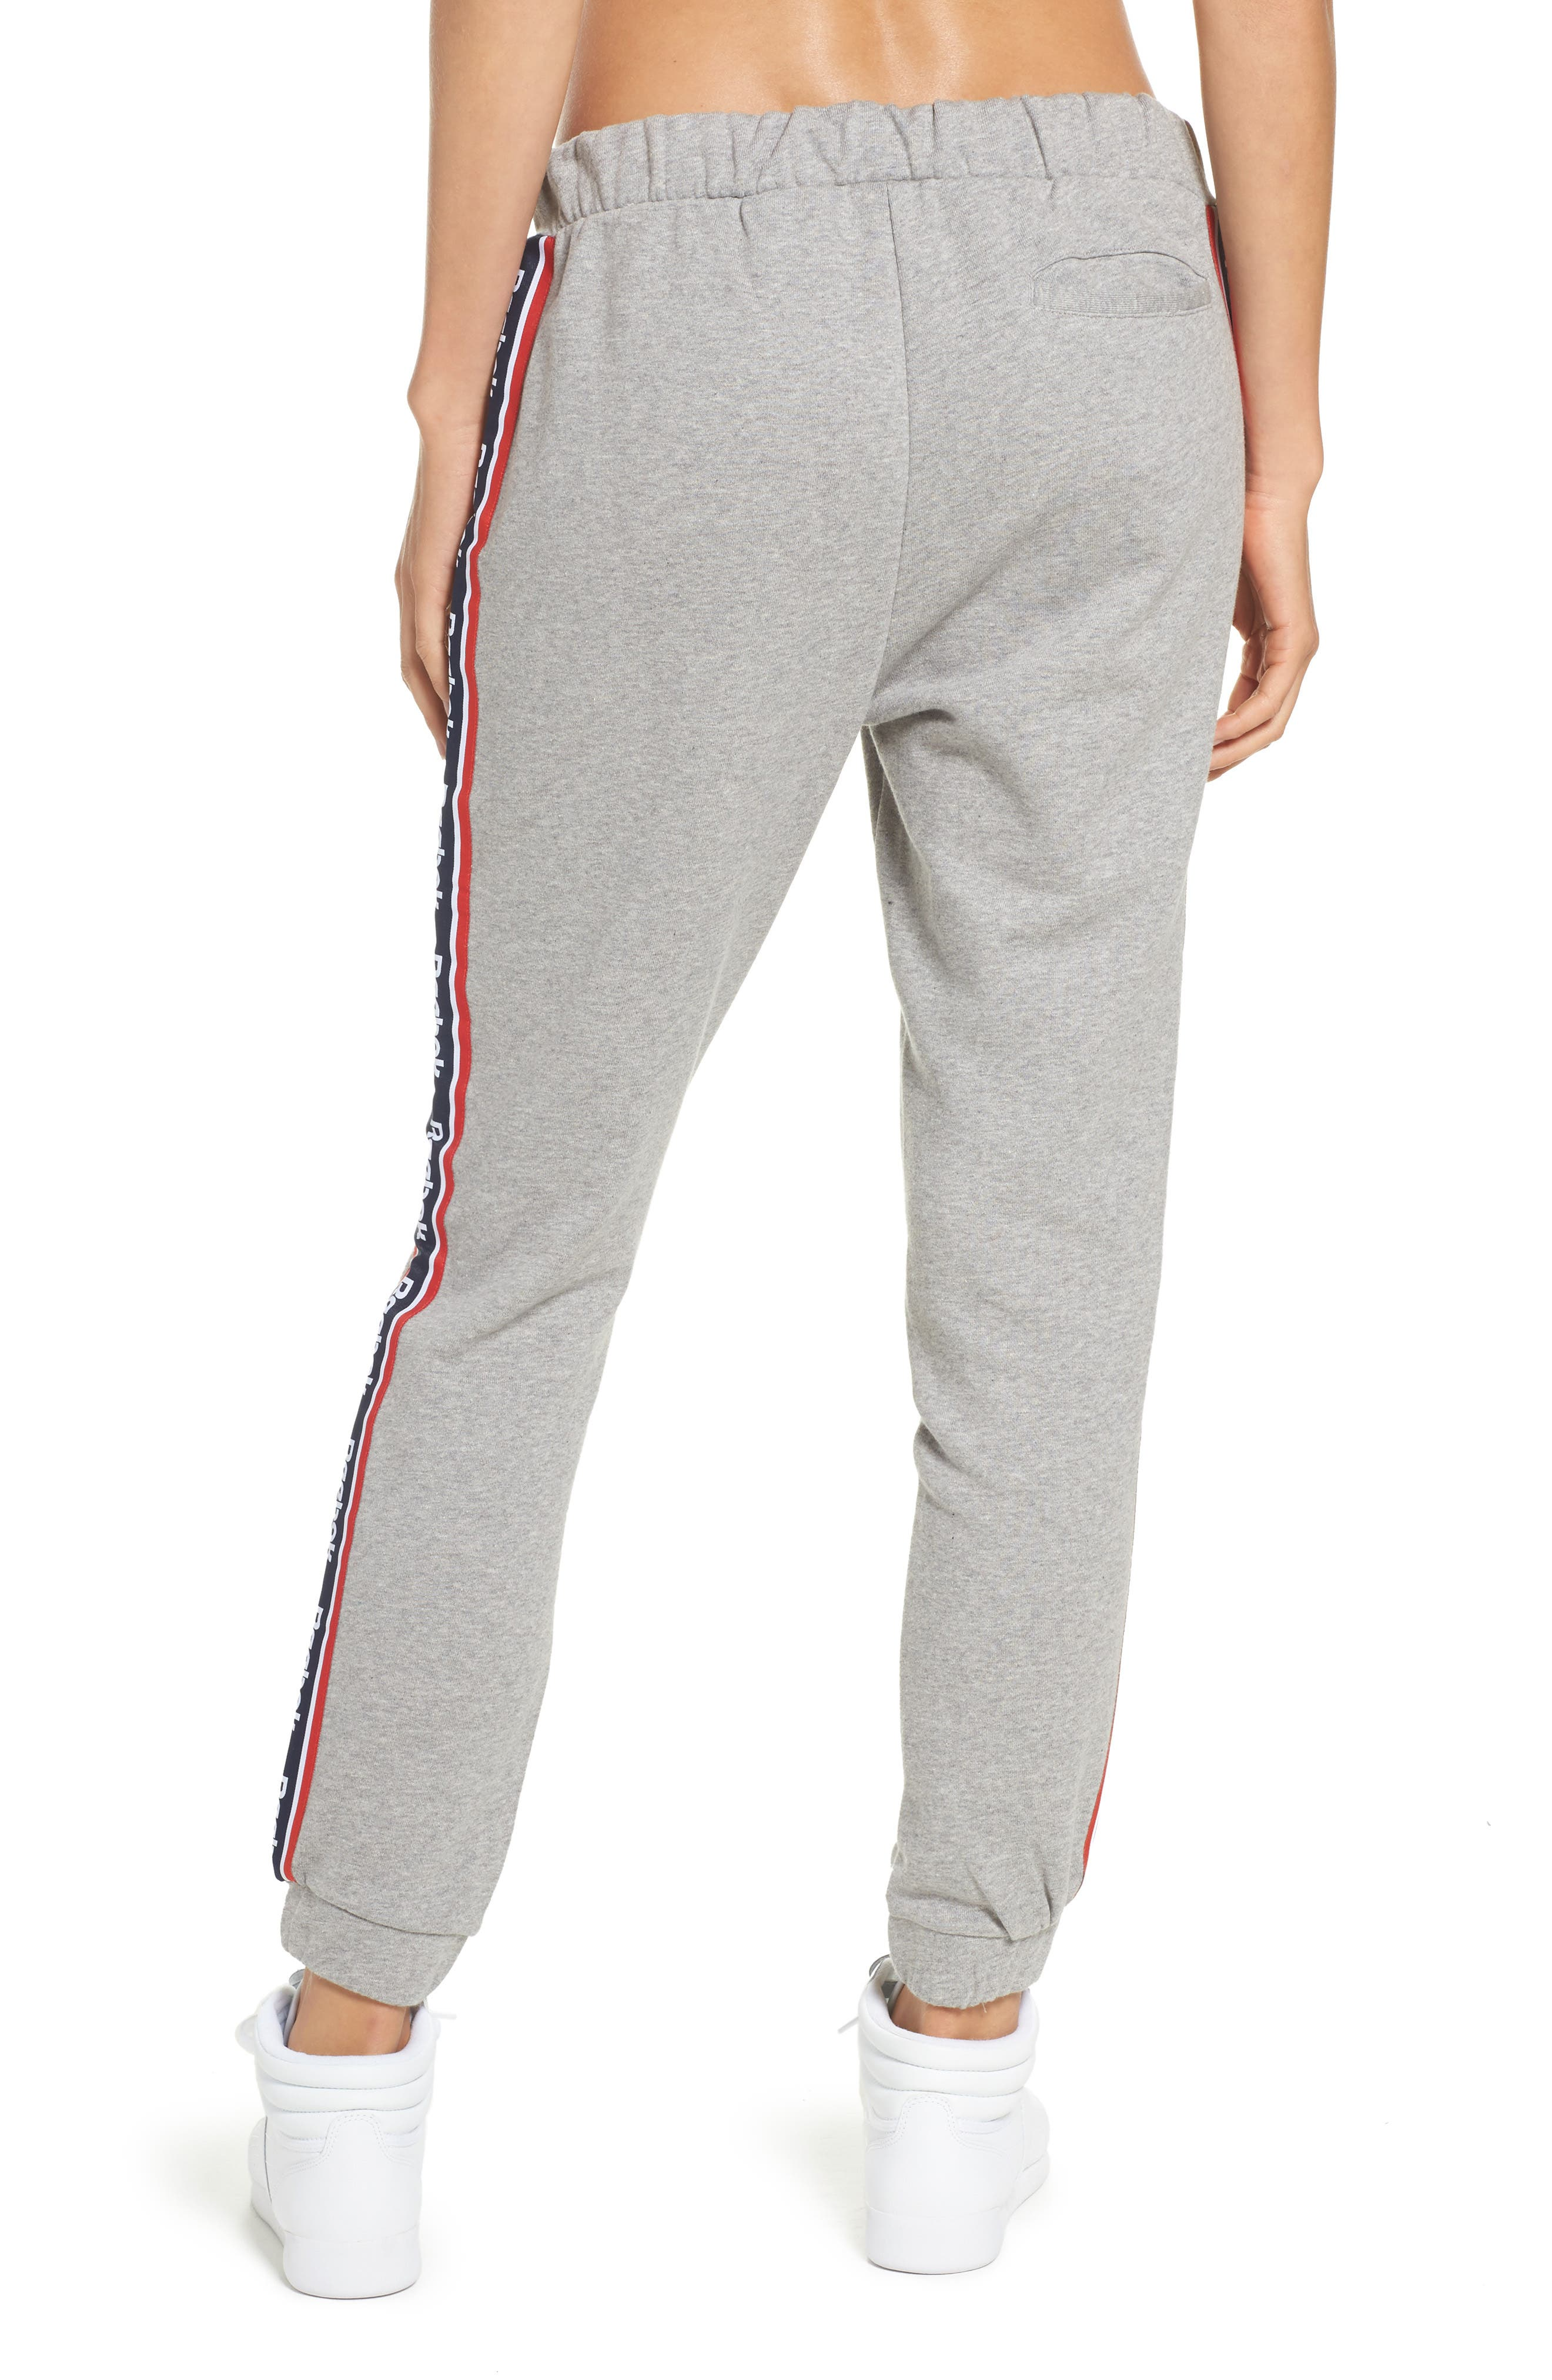 French Terry Pants,                             Alternate thumbnail 2, color,                             Medium Grey Heather